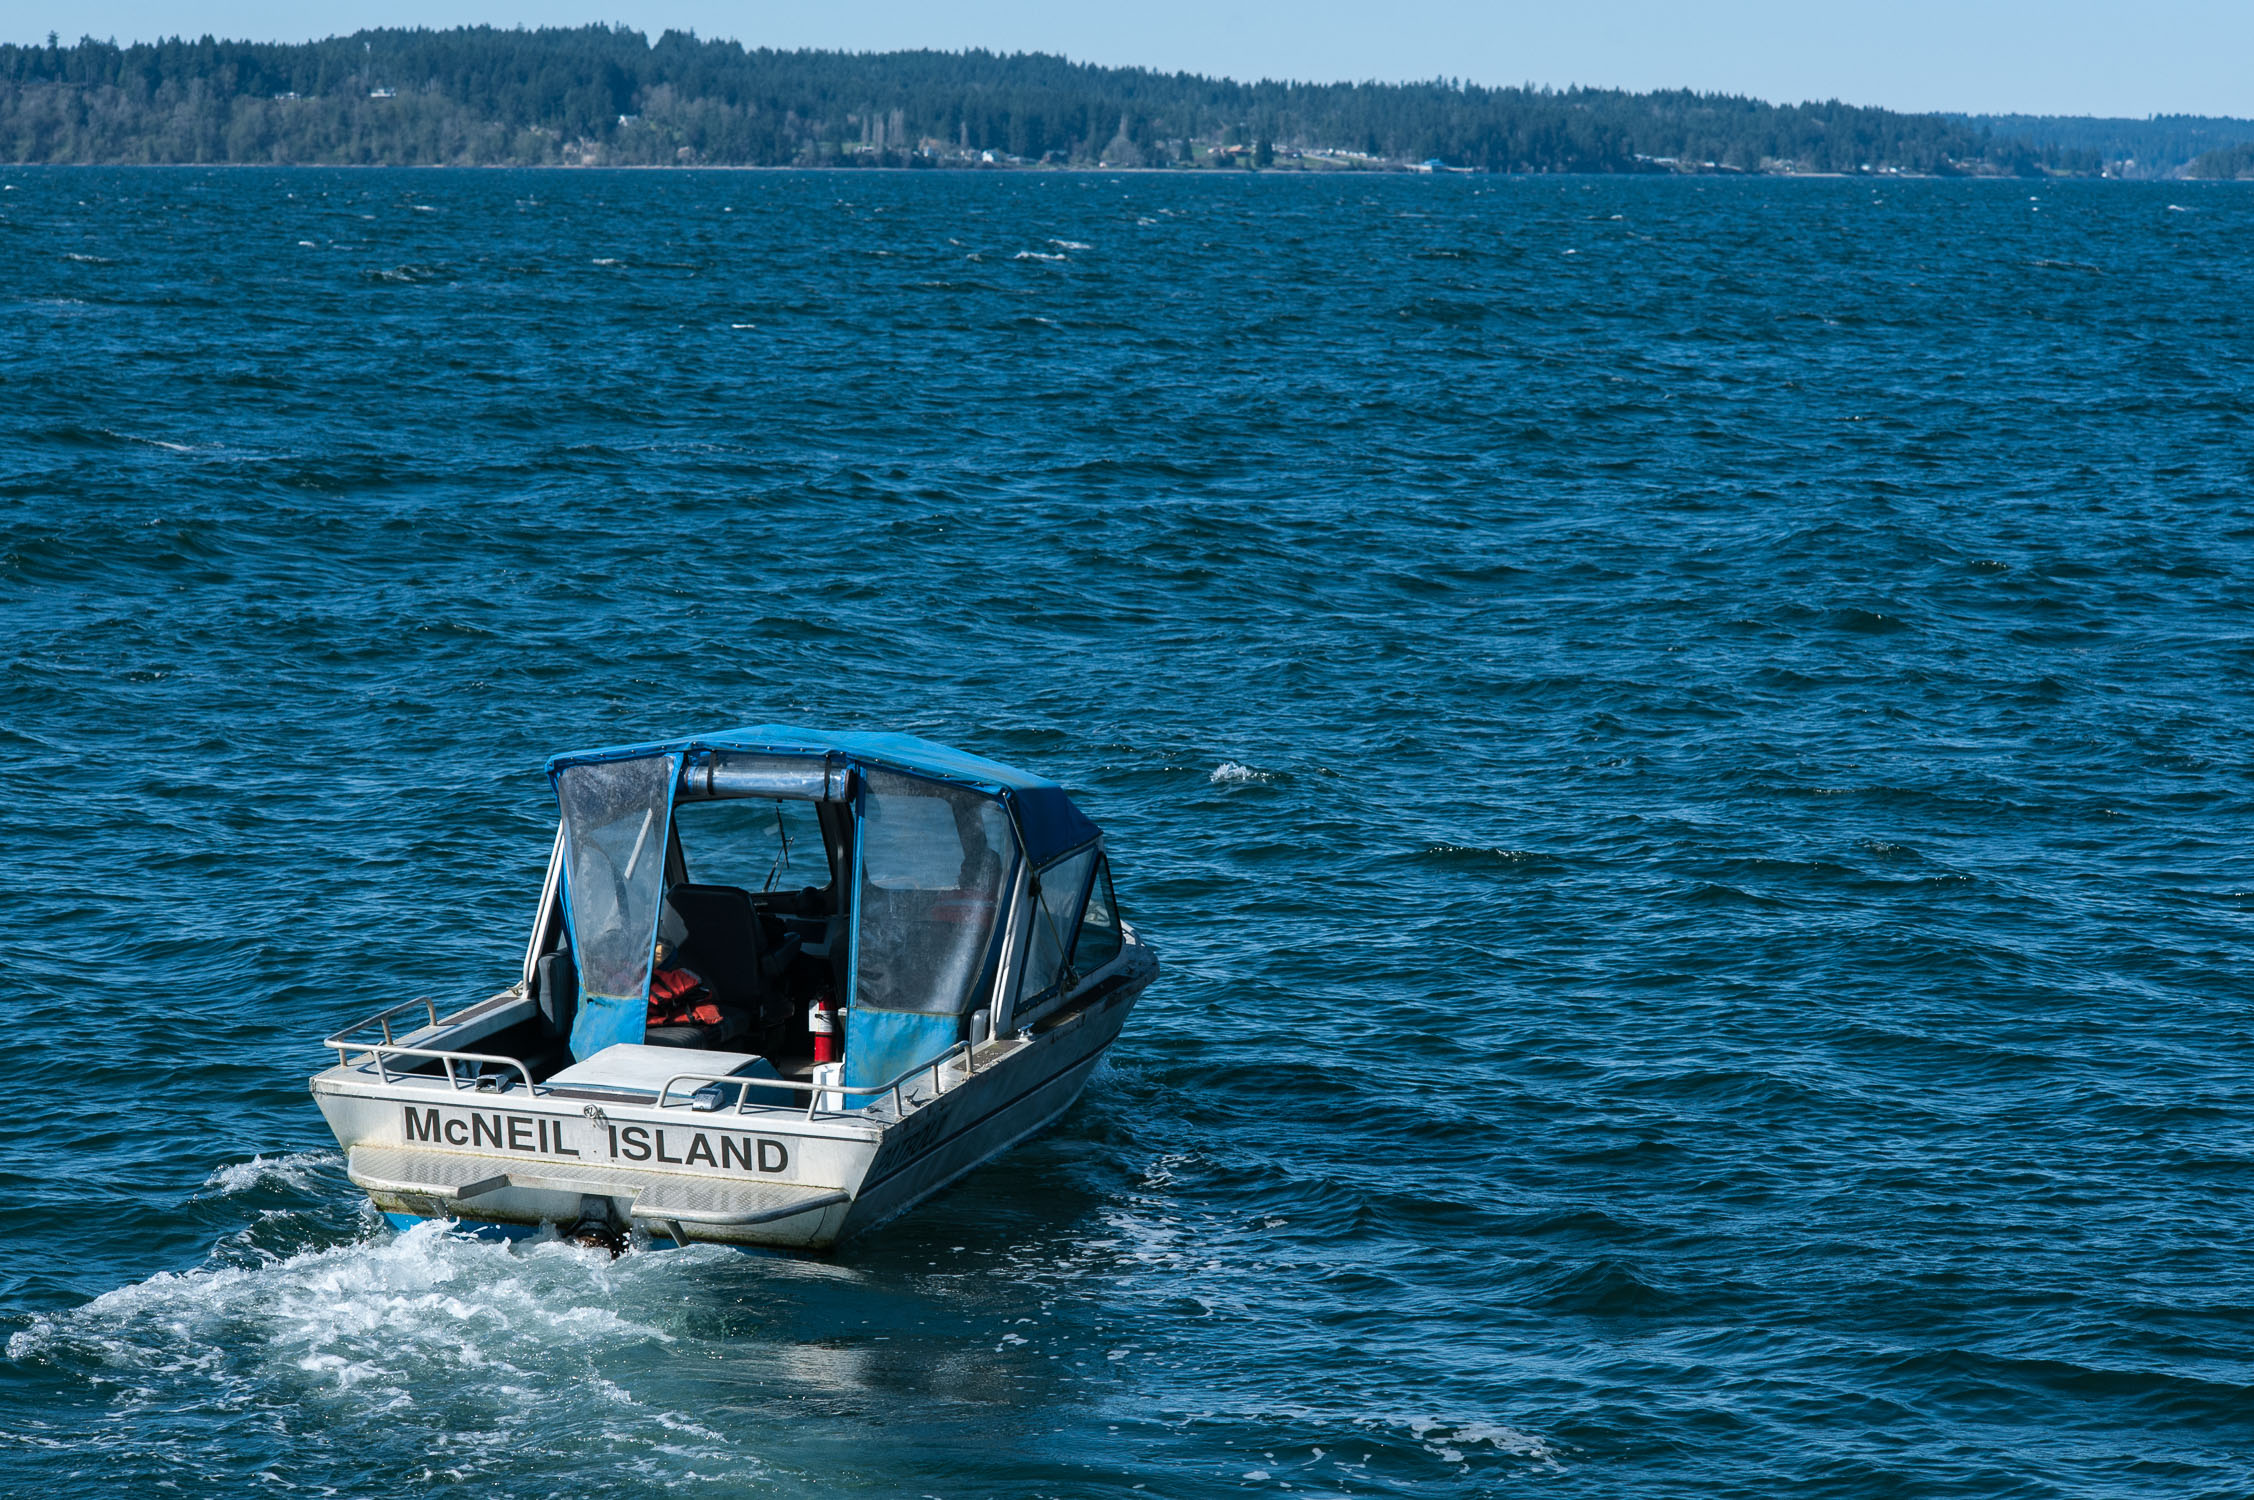 One of several patrol boats that puttered around Steilacoom Ferry Dock.